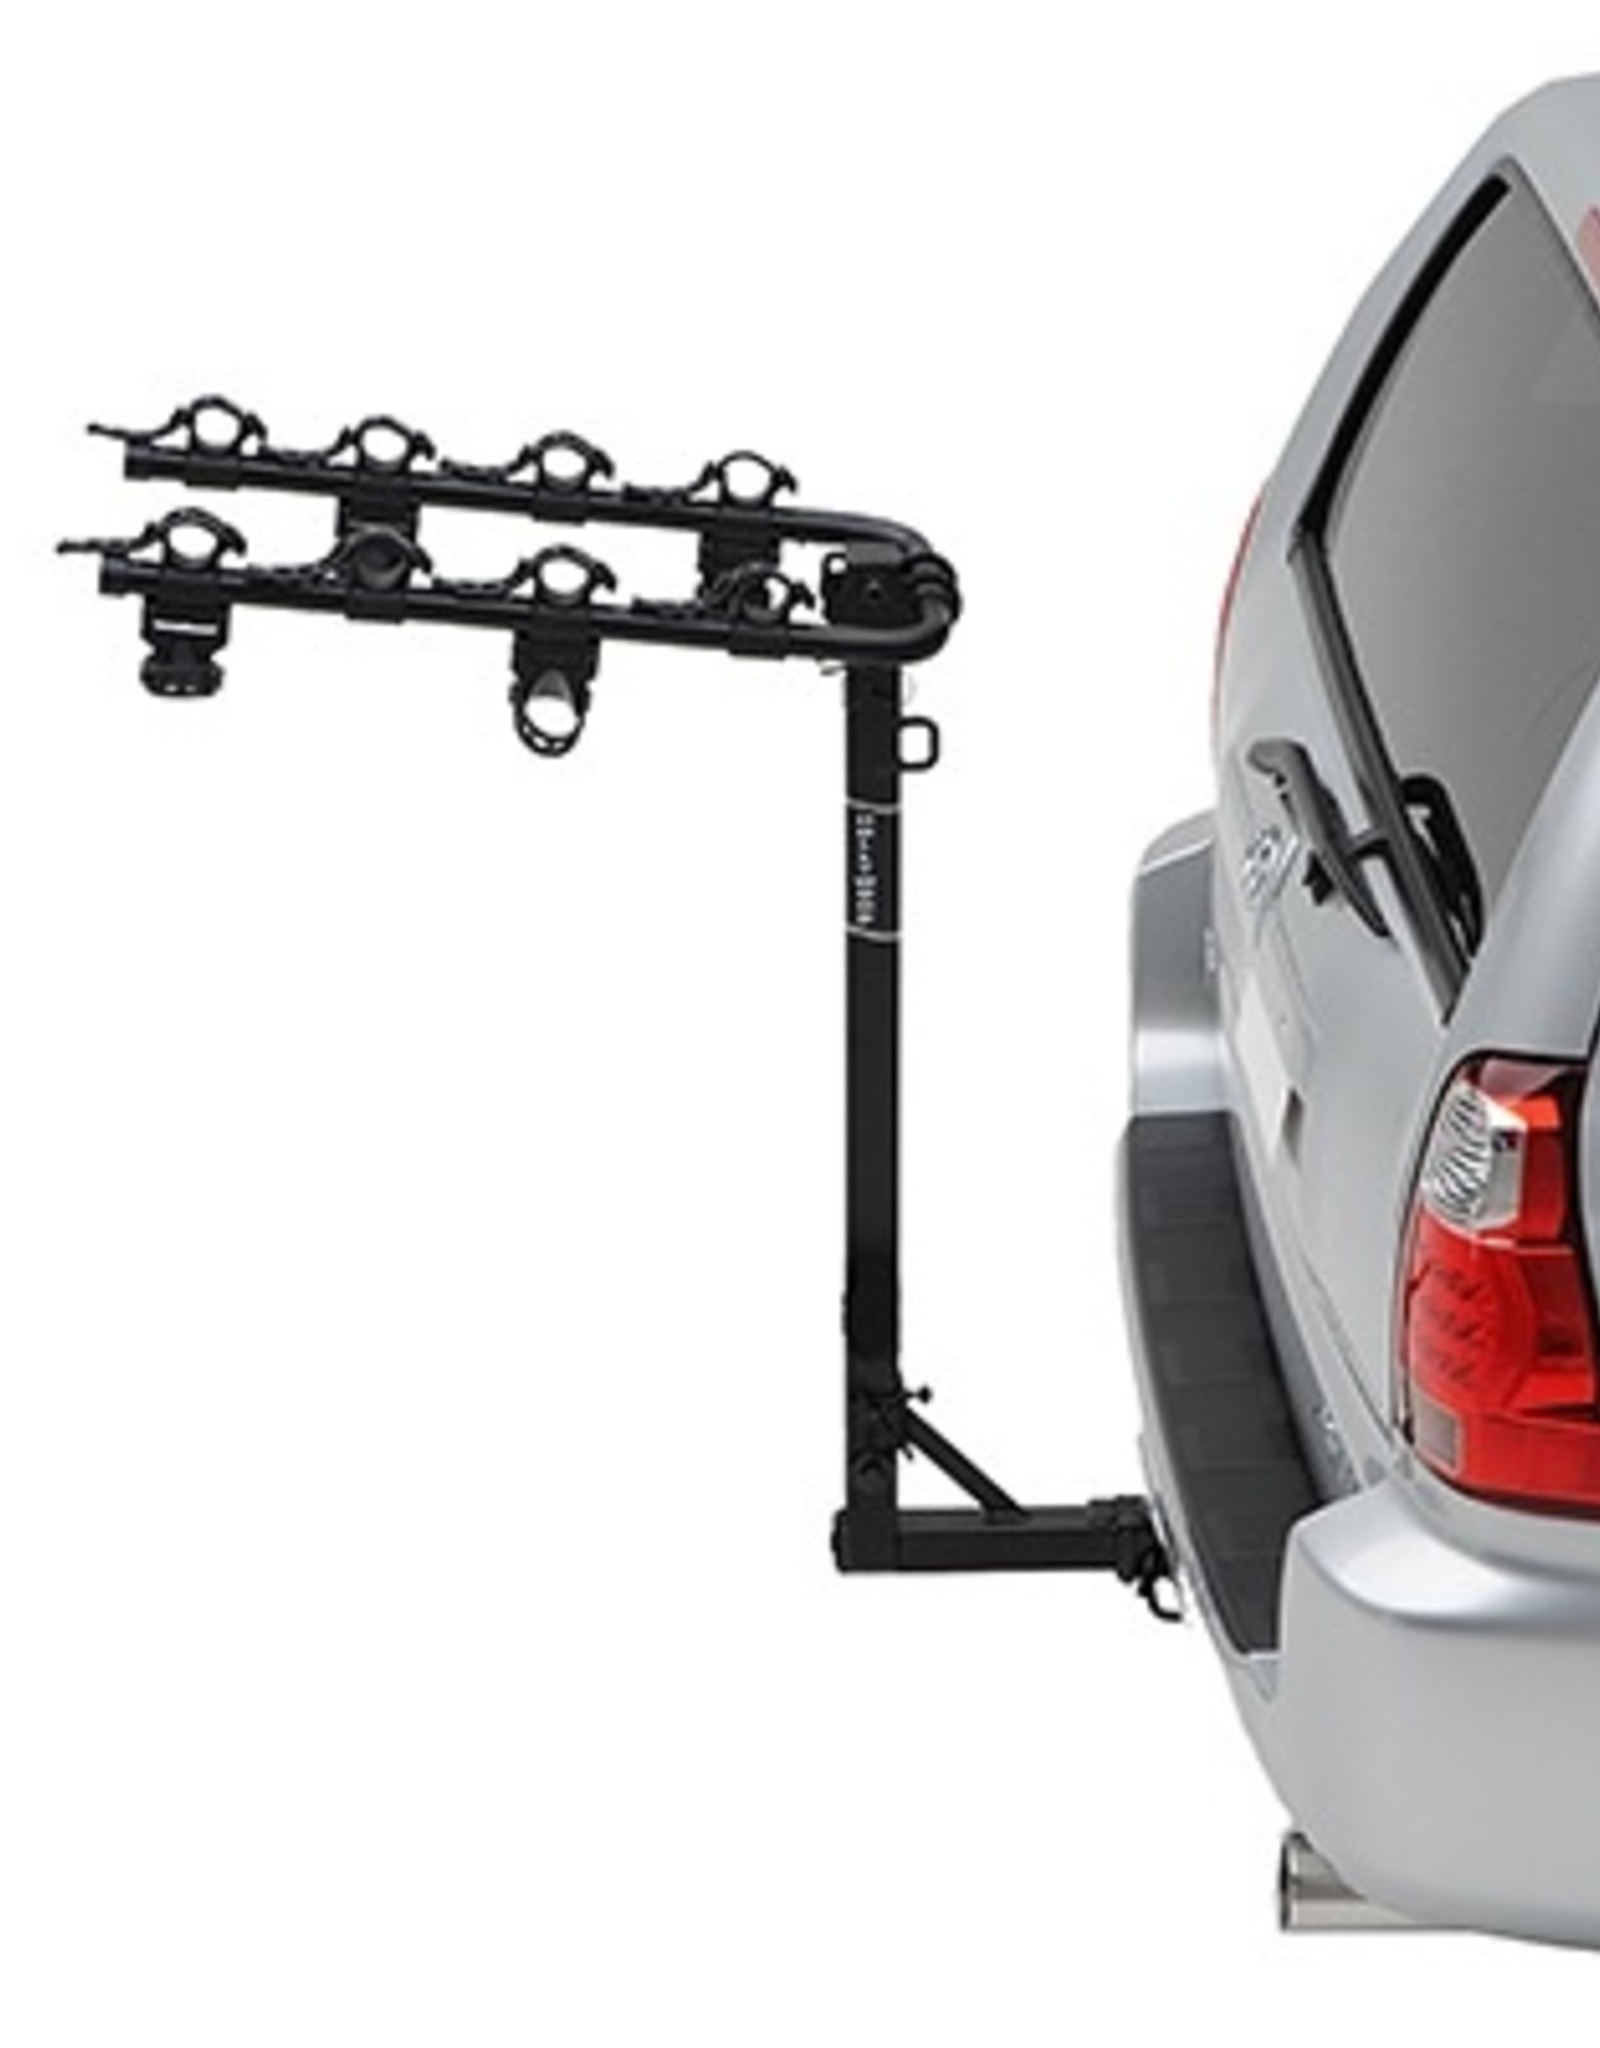 "Hollywood Hollywood Racks, Traveler 4 Model HR8500 (1-1/4"" & 2"" Hitch), 4 Bikes"